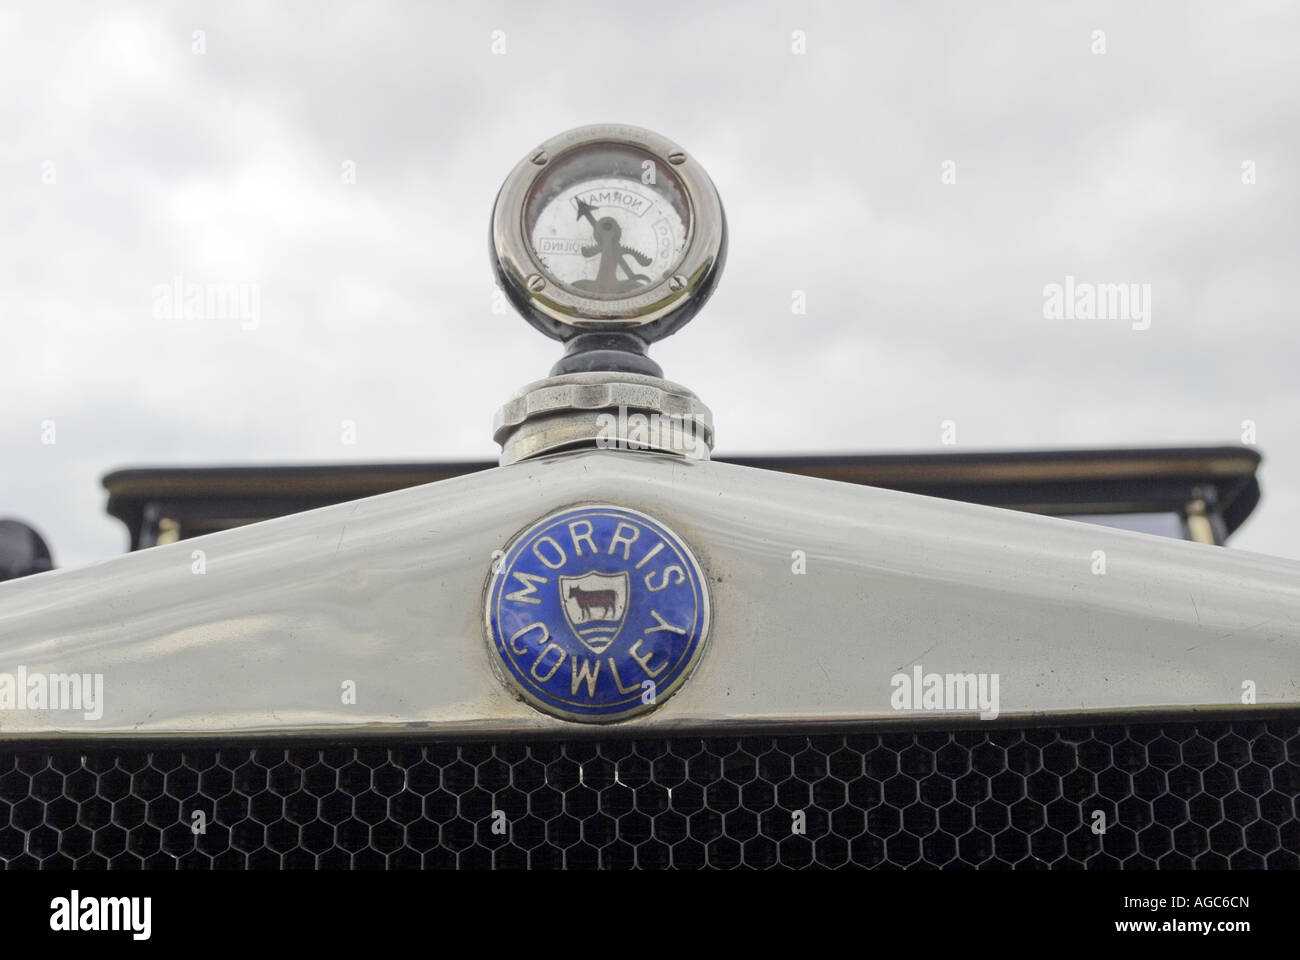 Morris Cowley radiator logo and temperature guage - Stock Image